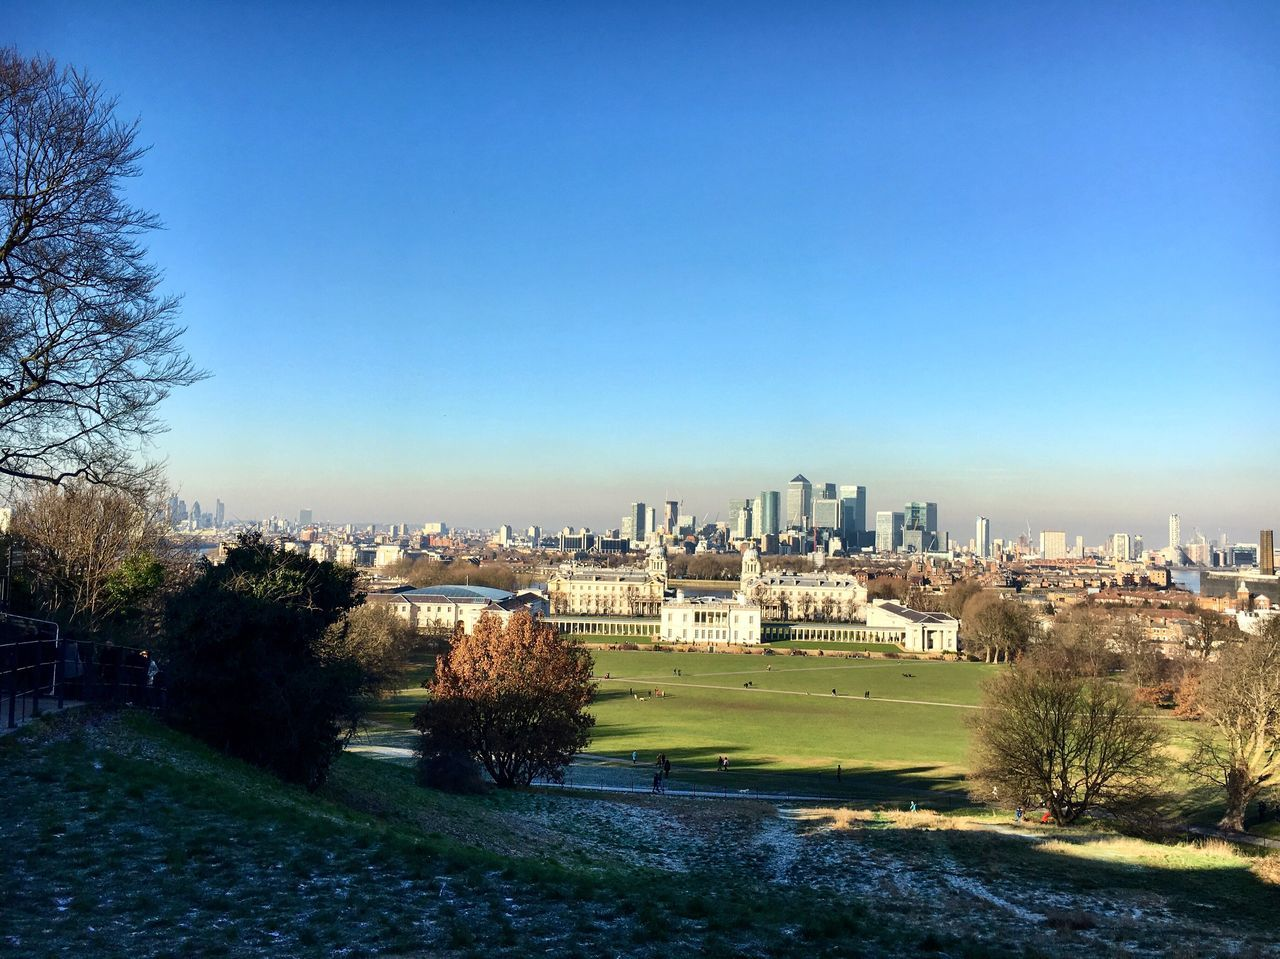 Oh Greenwich ... I will miss you Architecture City Cityscape Clear Sky Outdoors Sky Nature Day Urban Skyline Grass Beauty In Nature Winter Sun Cloud - Sky Londonsky Winter London Greenwich Park Greenwich,London London Lifestyle Urban Exploration